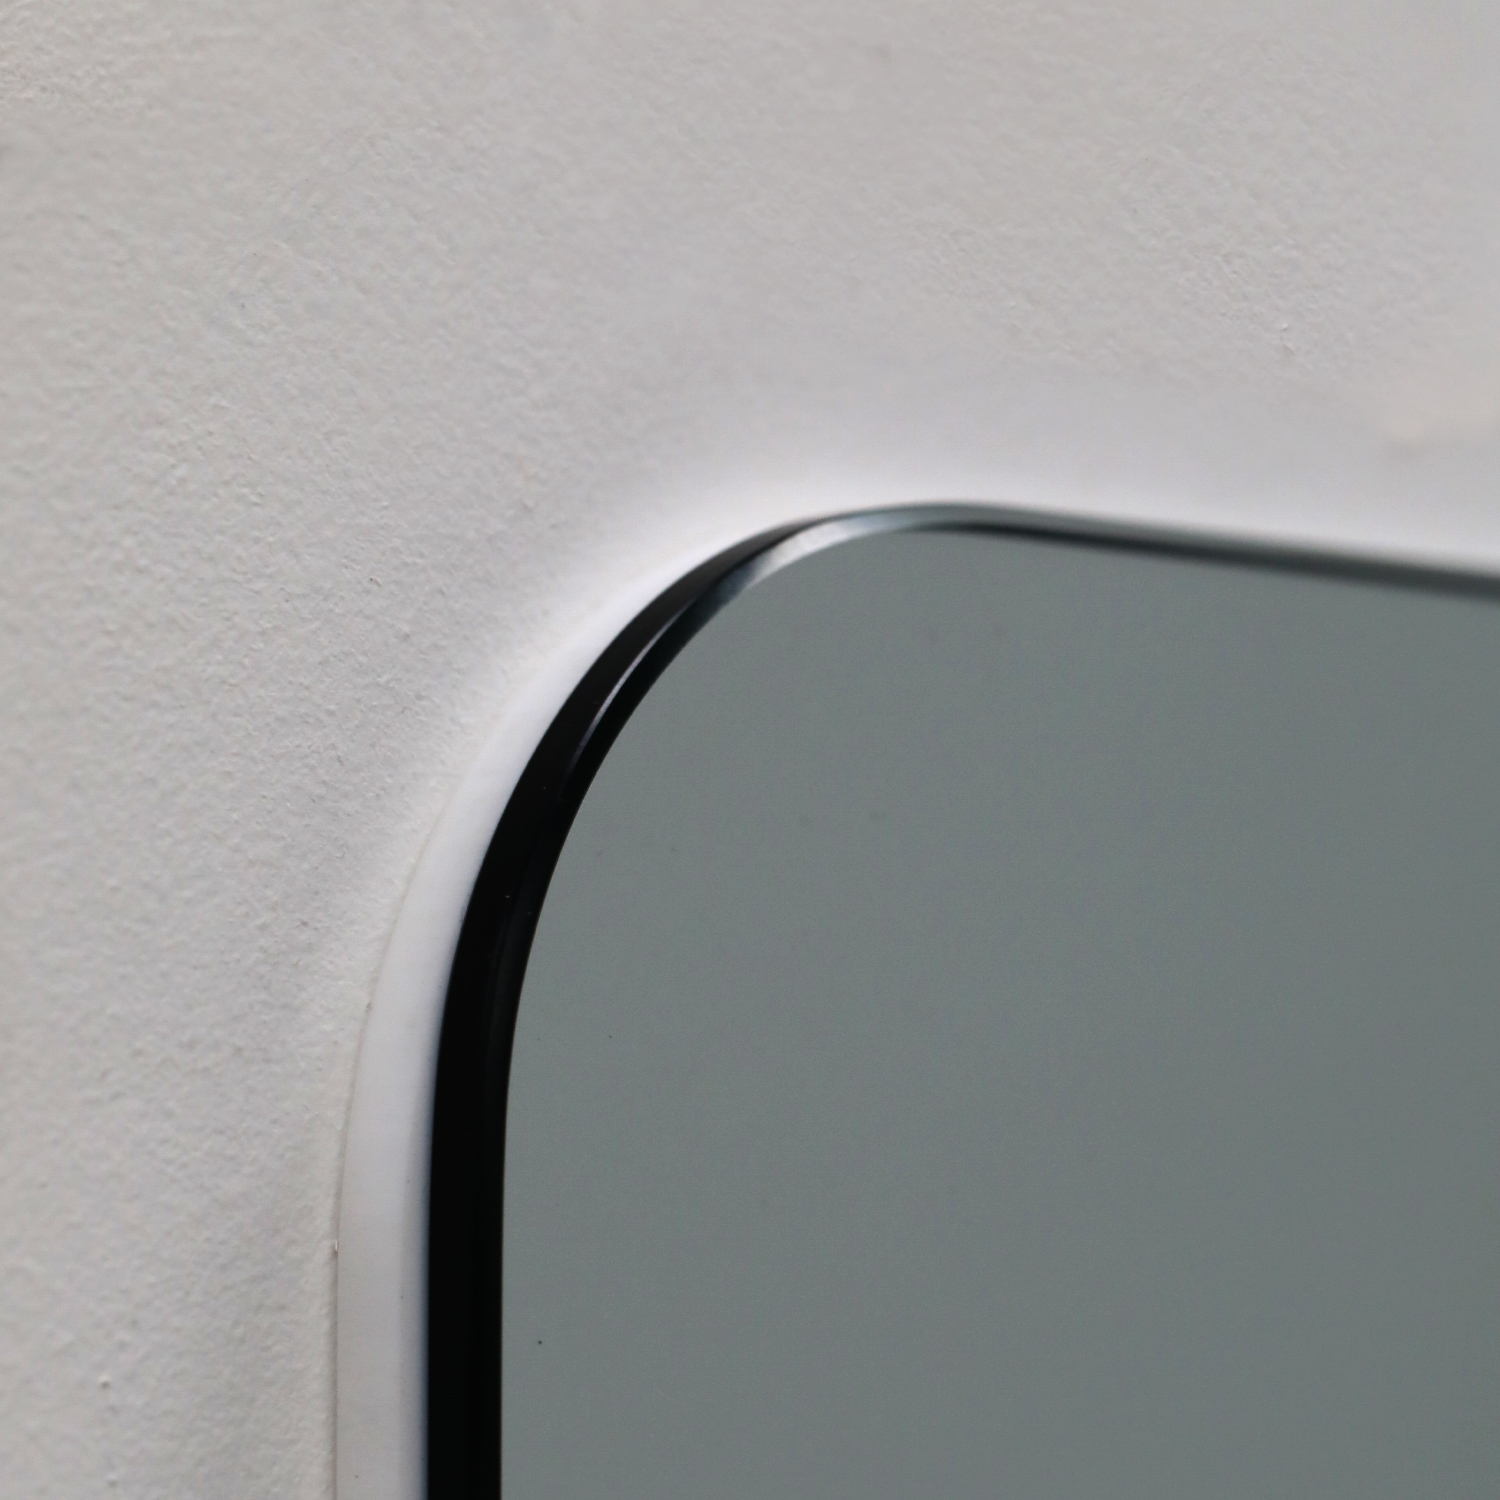 Rounded edge of frameless cleanroom mirror for easy cleaning